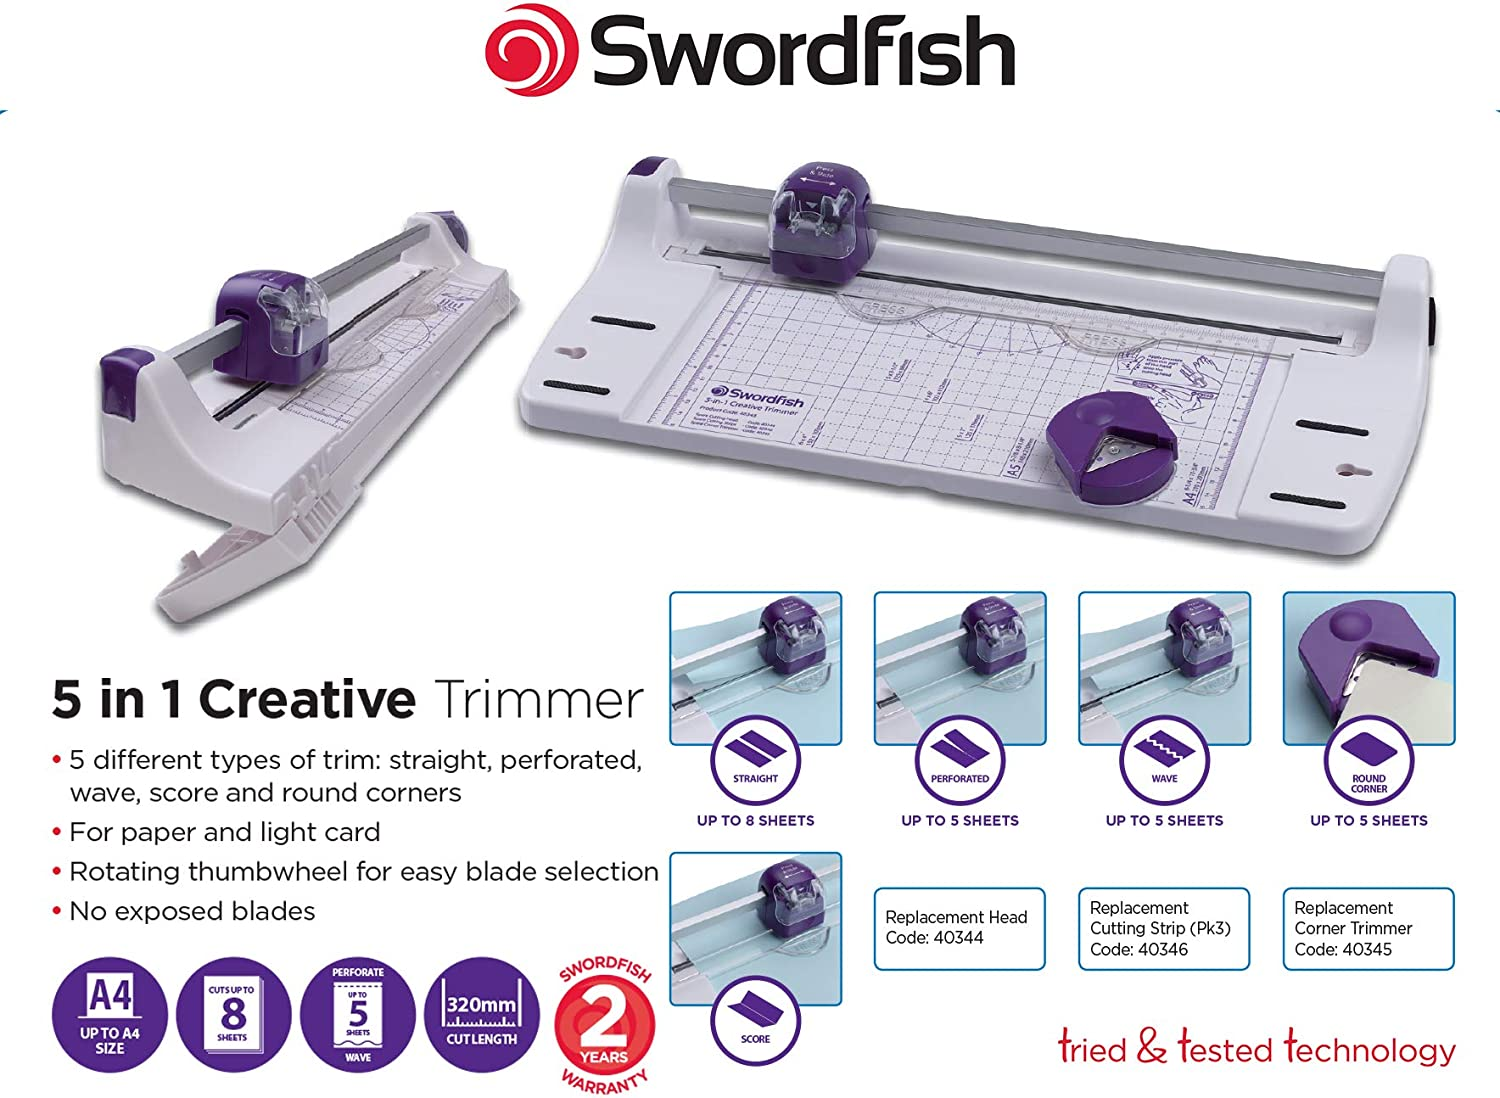 Swordfish A4 5 en 1 Creative Recortadora: Amazon.es: Oficina y ...